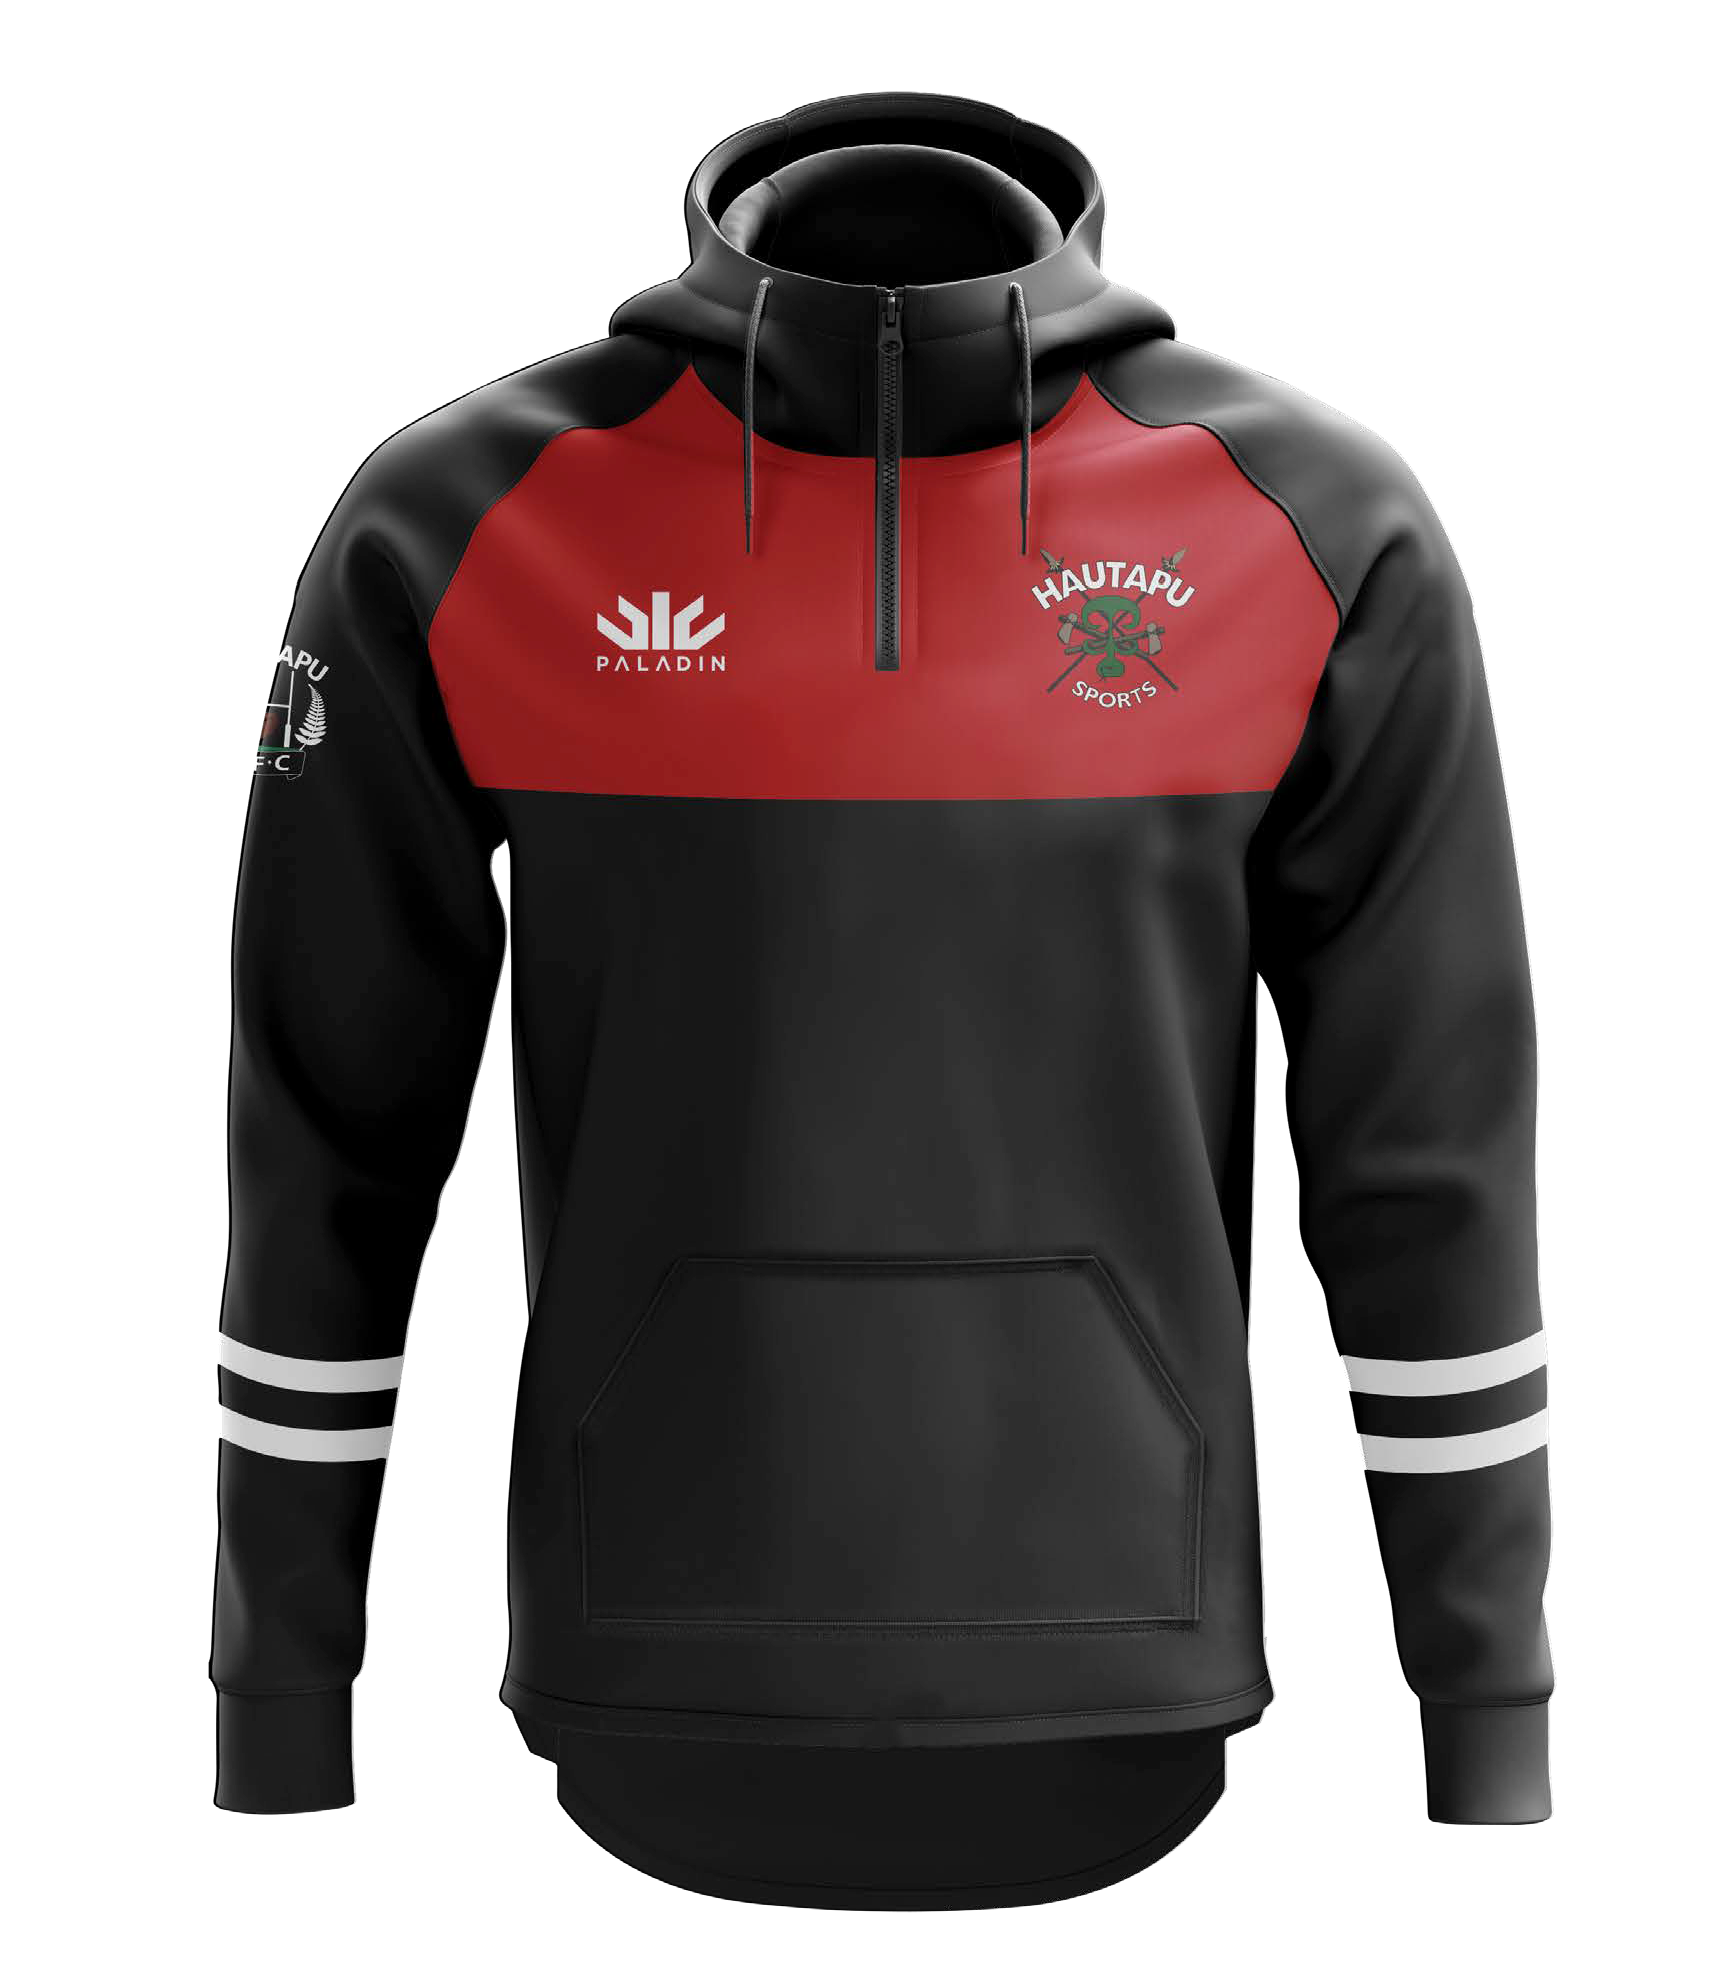 Hautapu RC Hoody Female